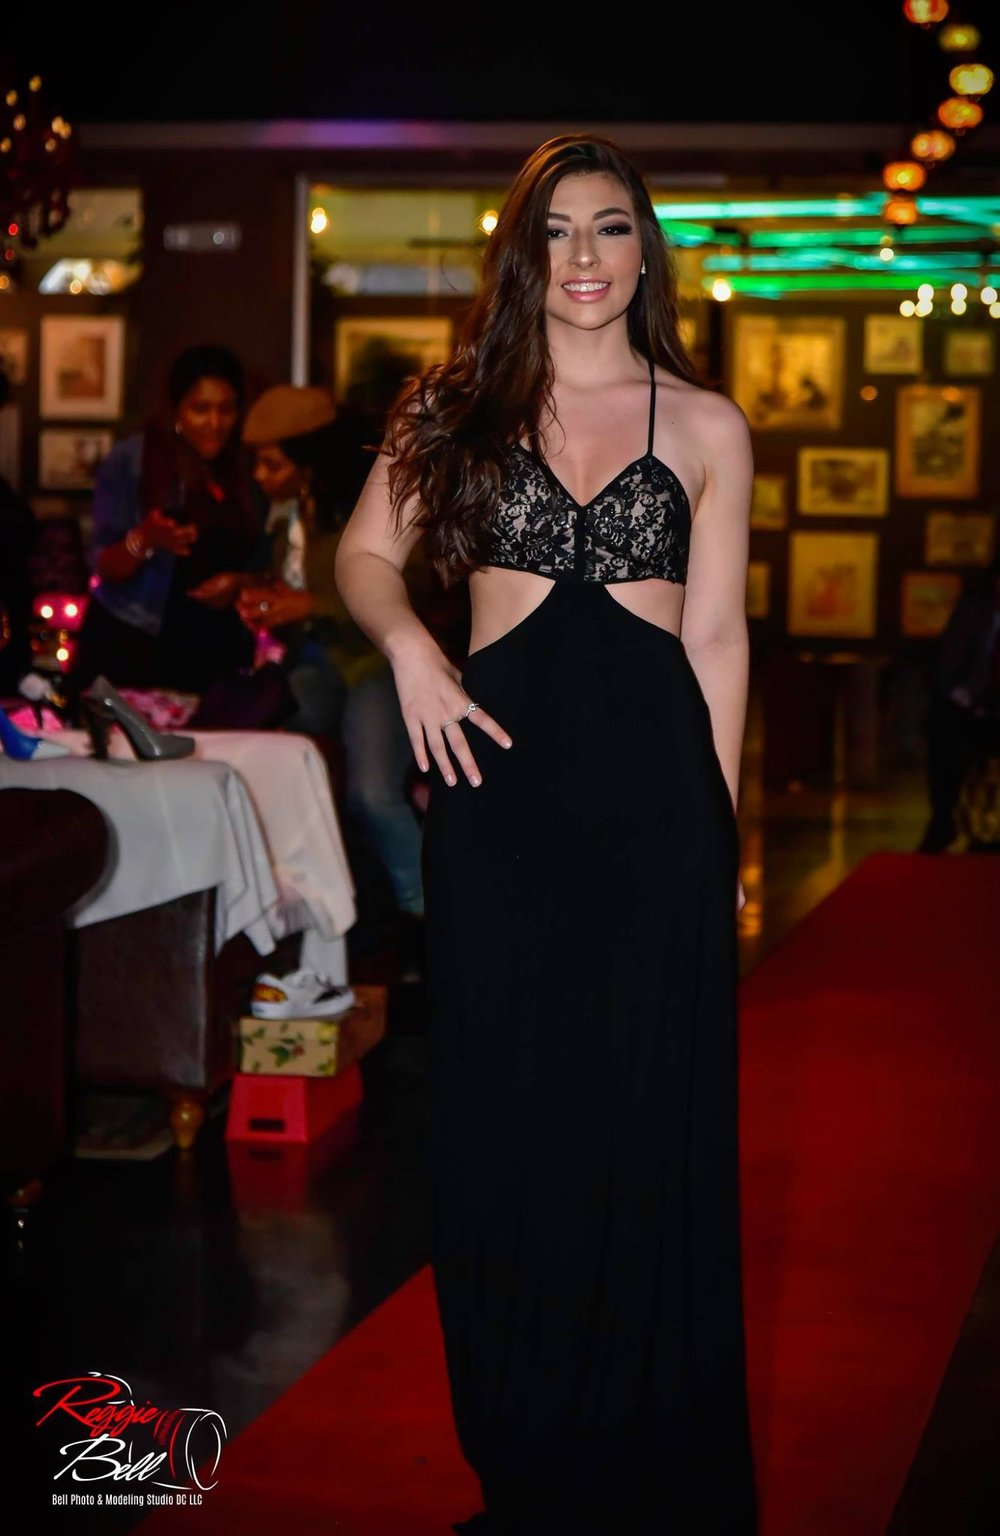 Savvy_Sexy_socia_womens_Networking_club_Keula_Binelly_Happy_hour_fashion_show_Greenhouse_Bistro_Couture